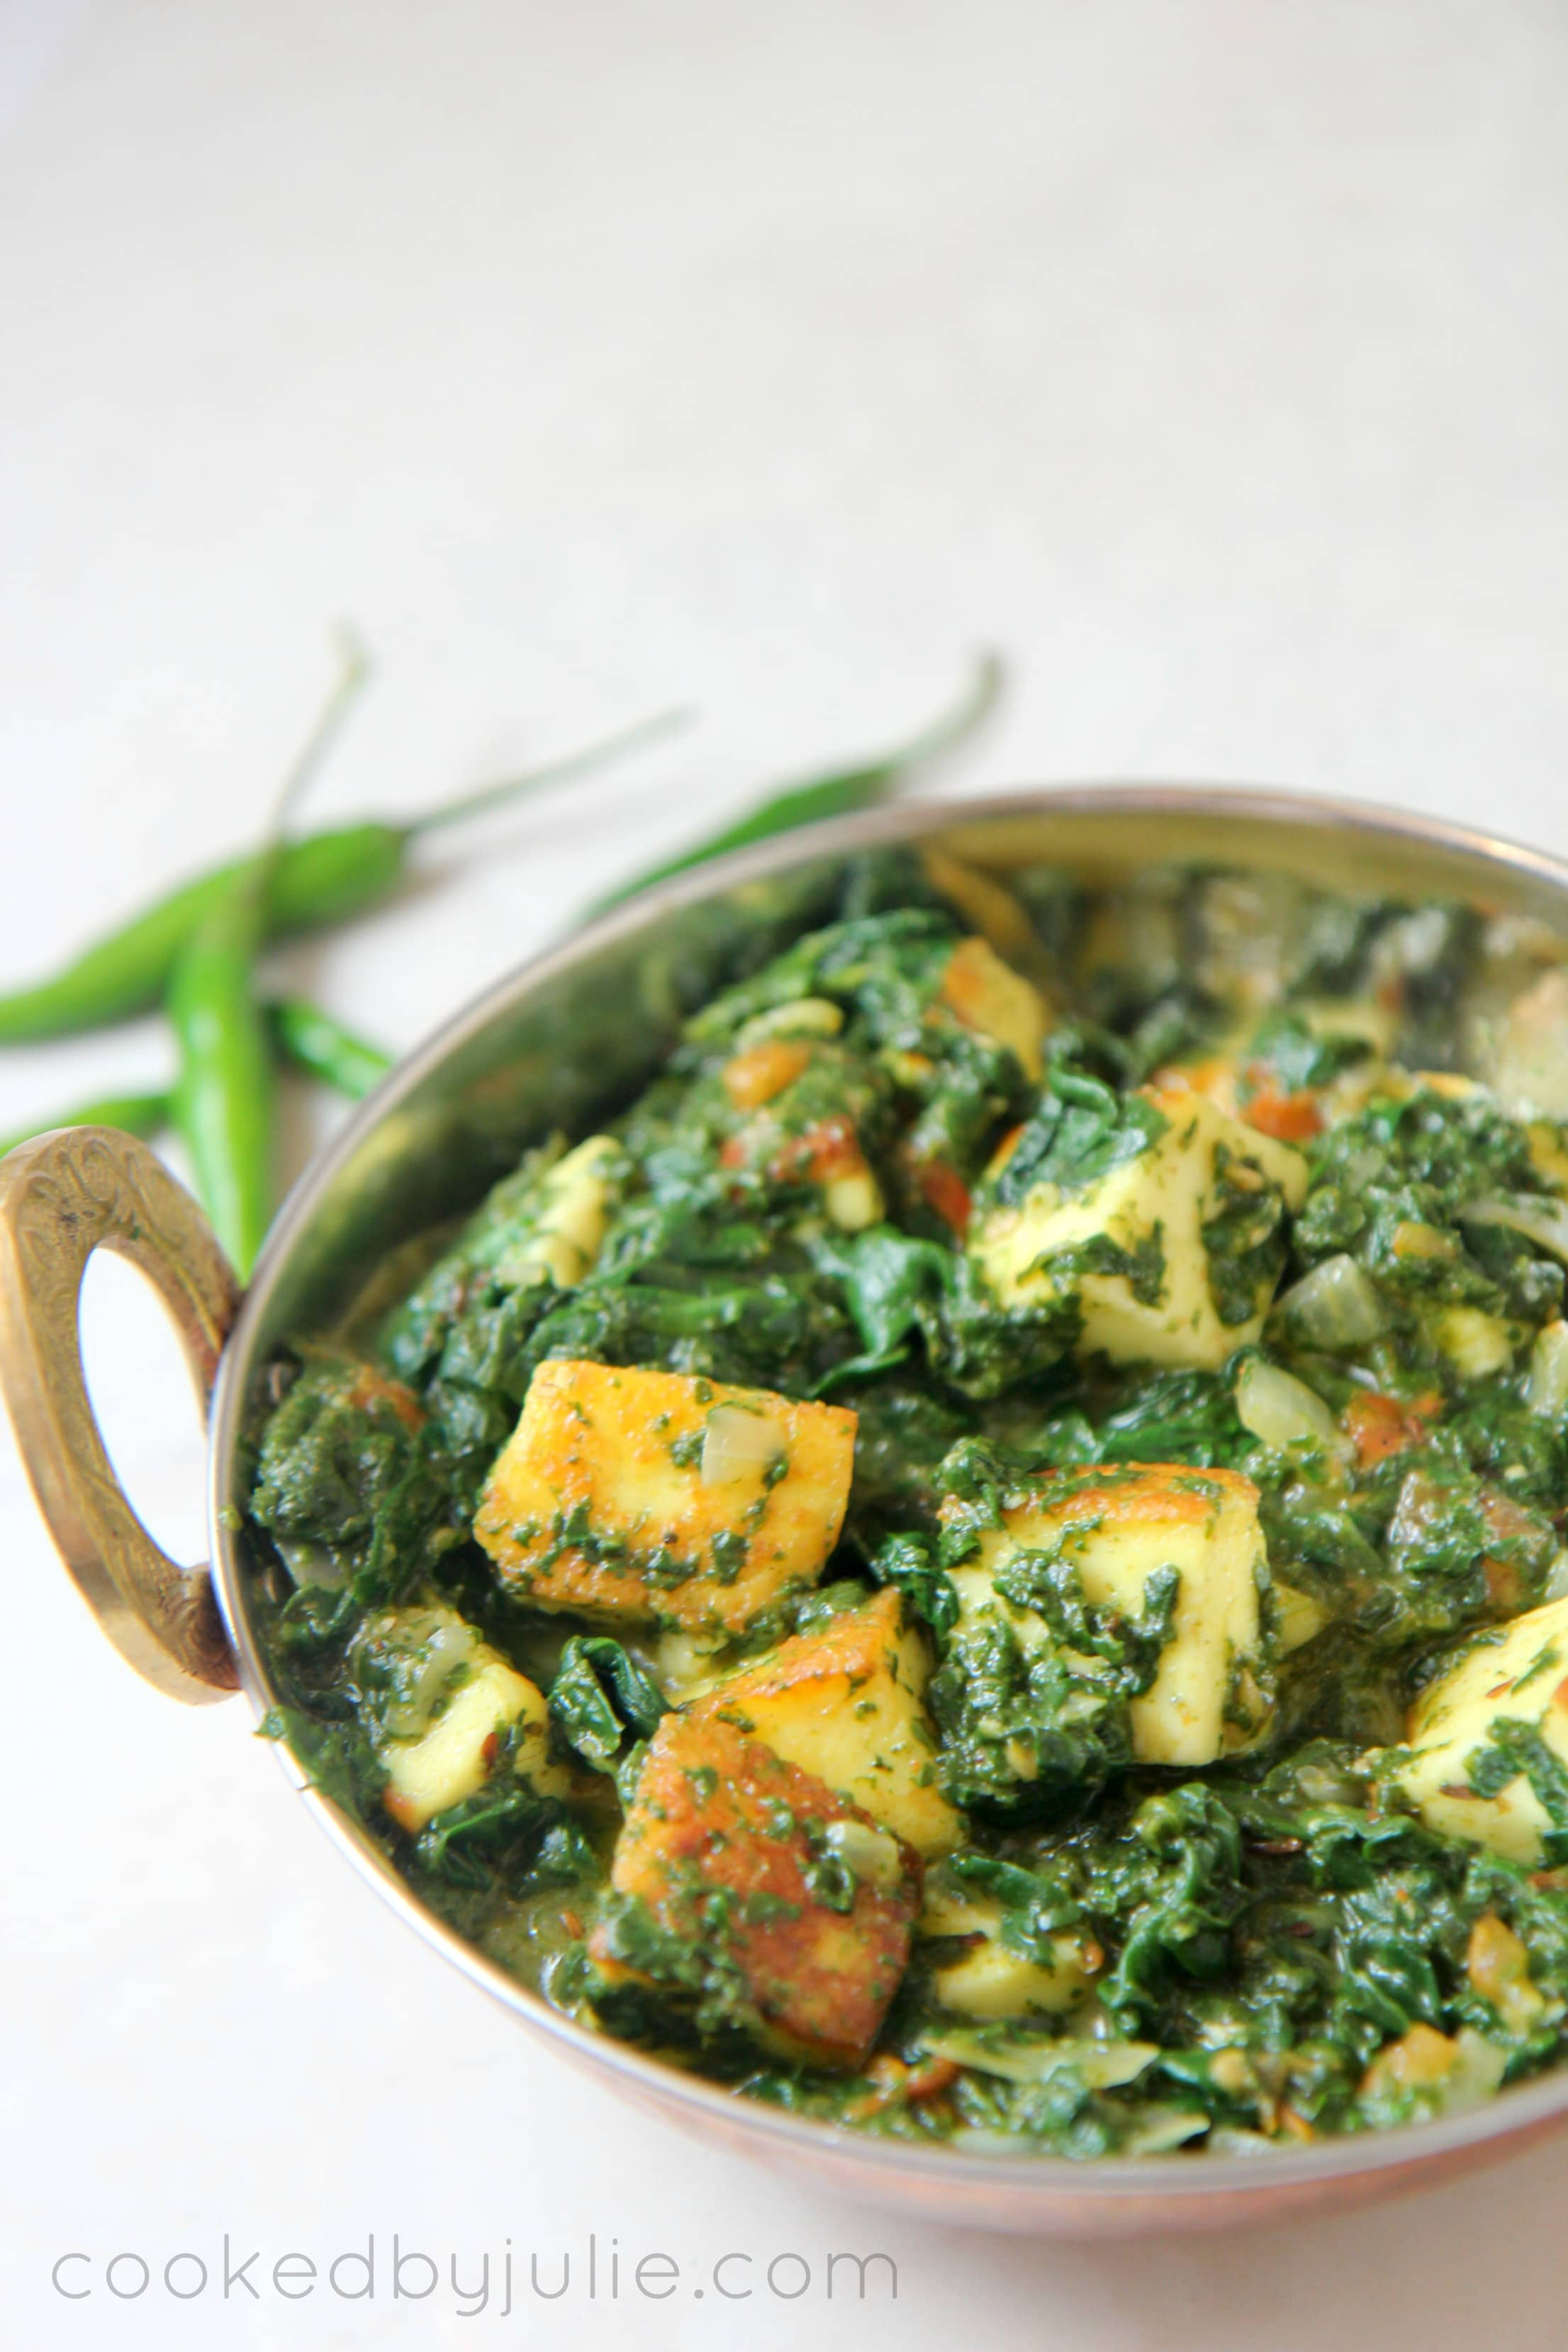 Saag Paneer Keto Friendly Gluten Free Cooked By Julie Video